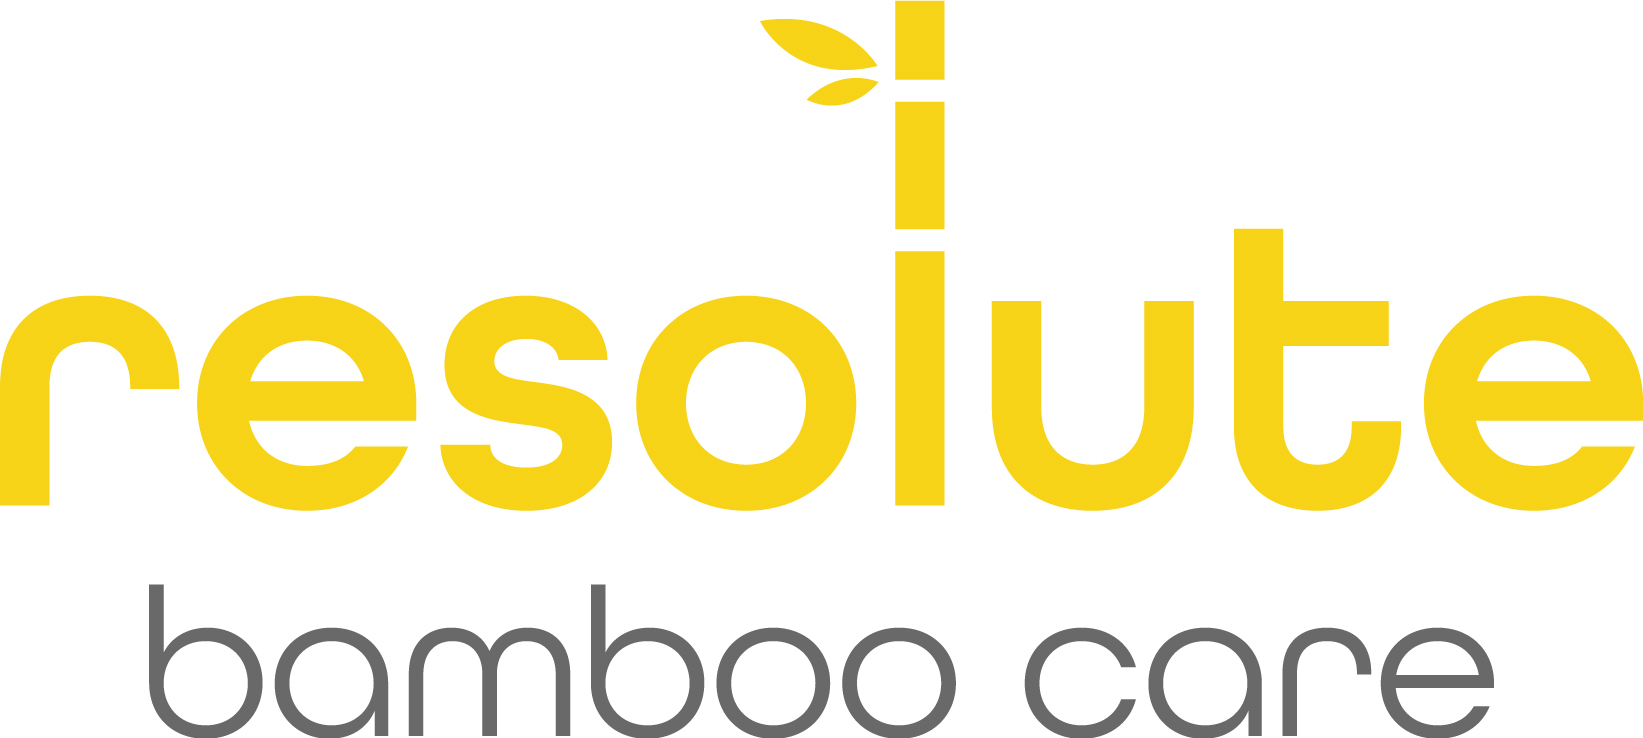 Resolute-Bamboo-Care_Logo-Yellow+Grey